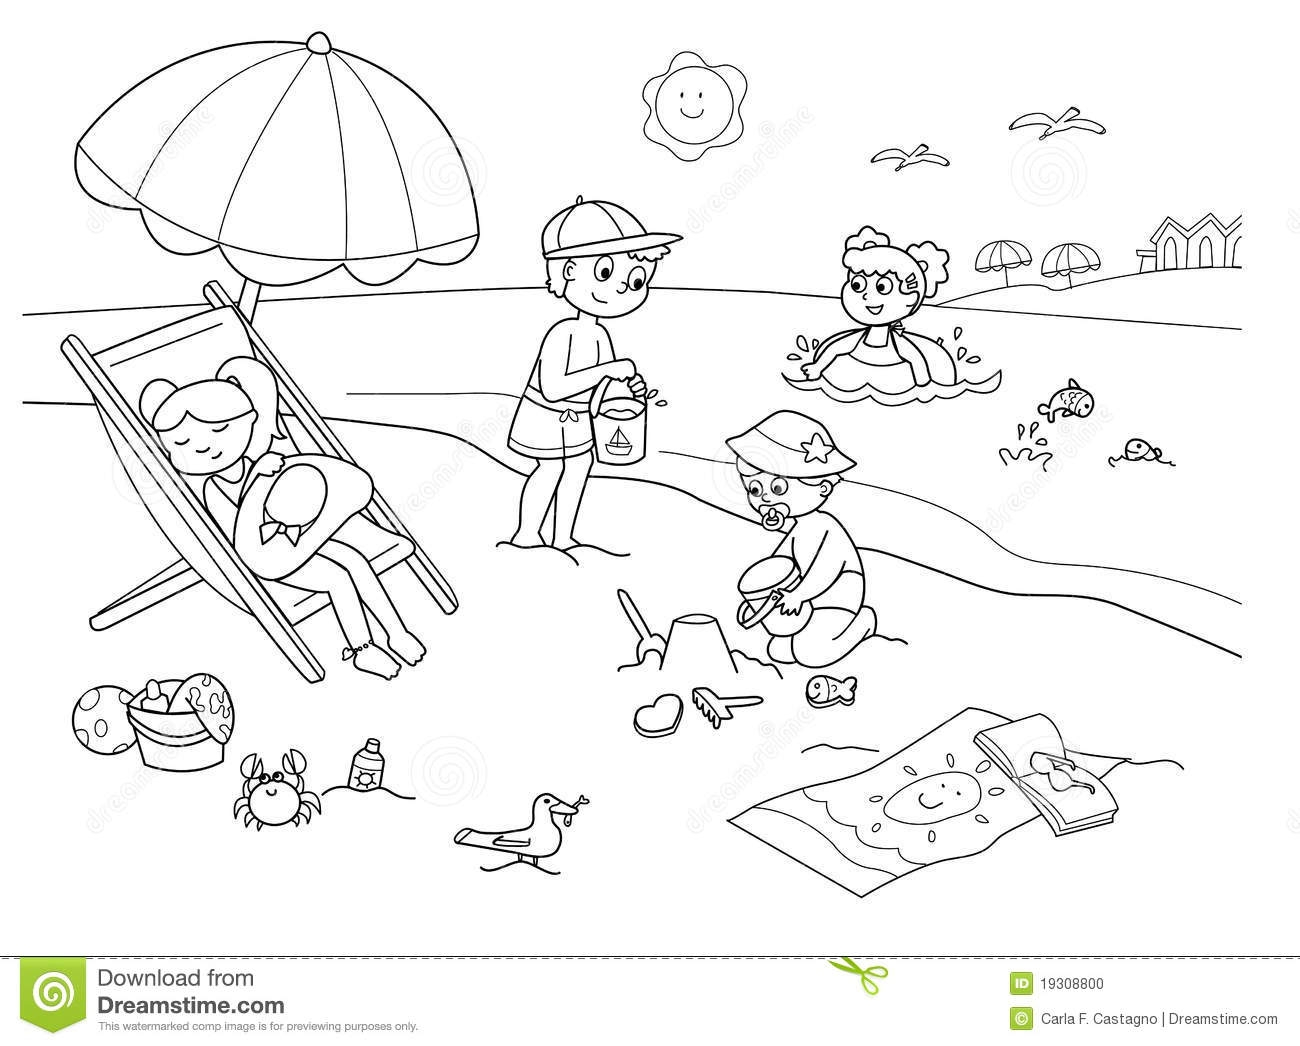 beach-coloring-pages.gif (800×591)   Free clip art, Clip art, Beach  coloring pages